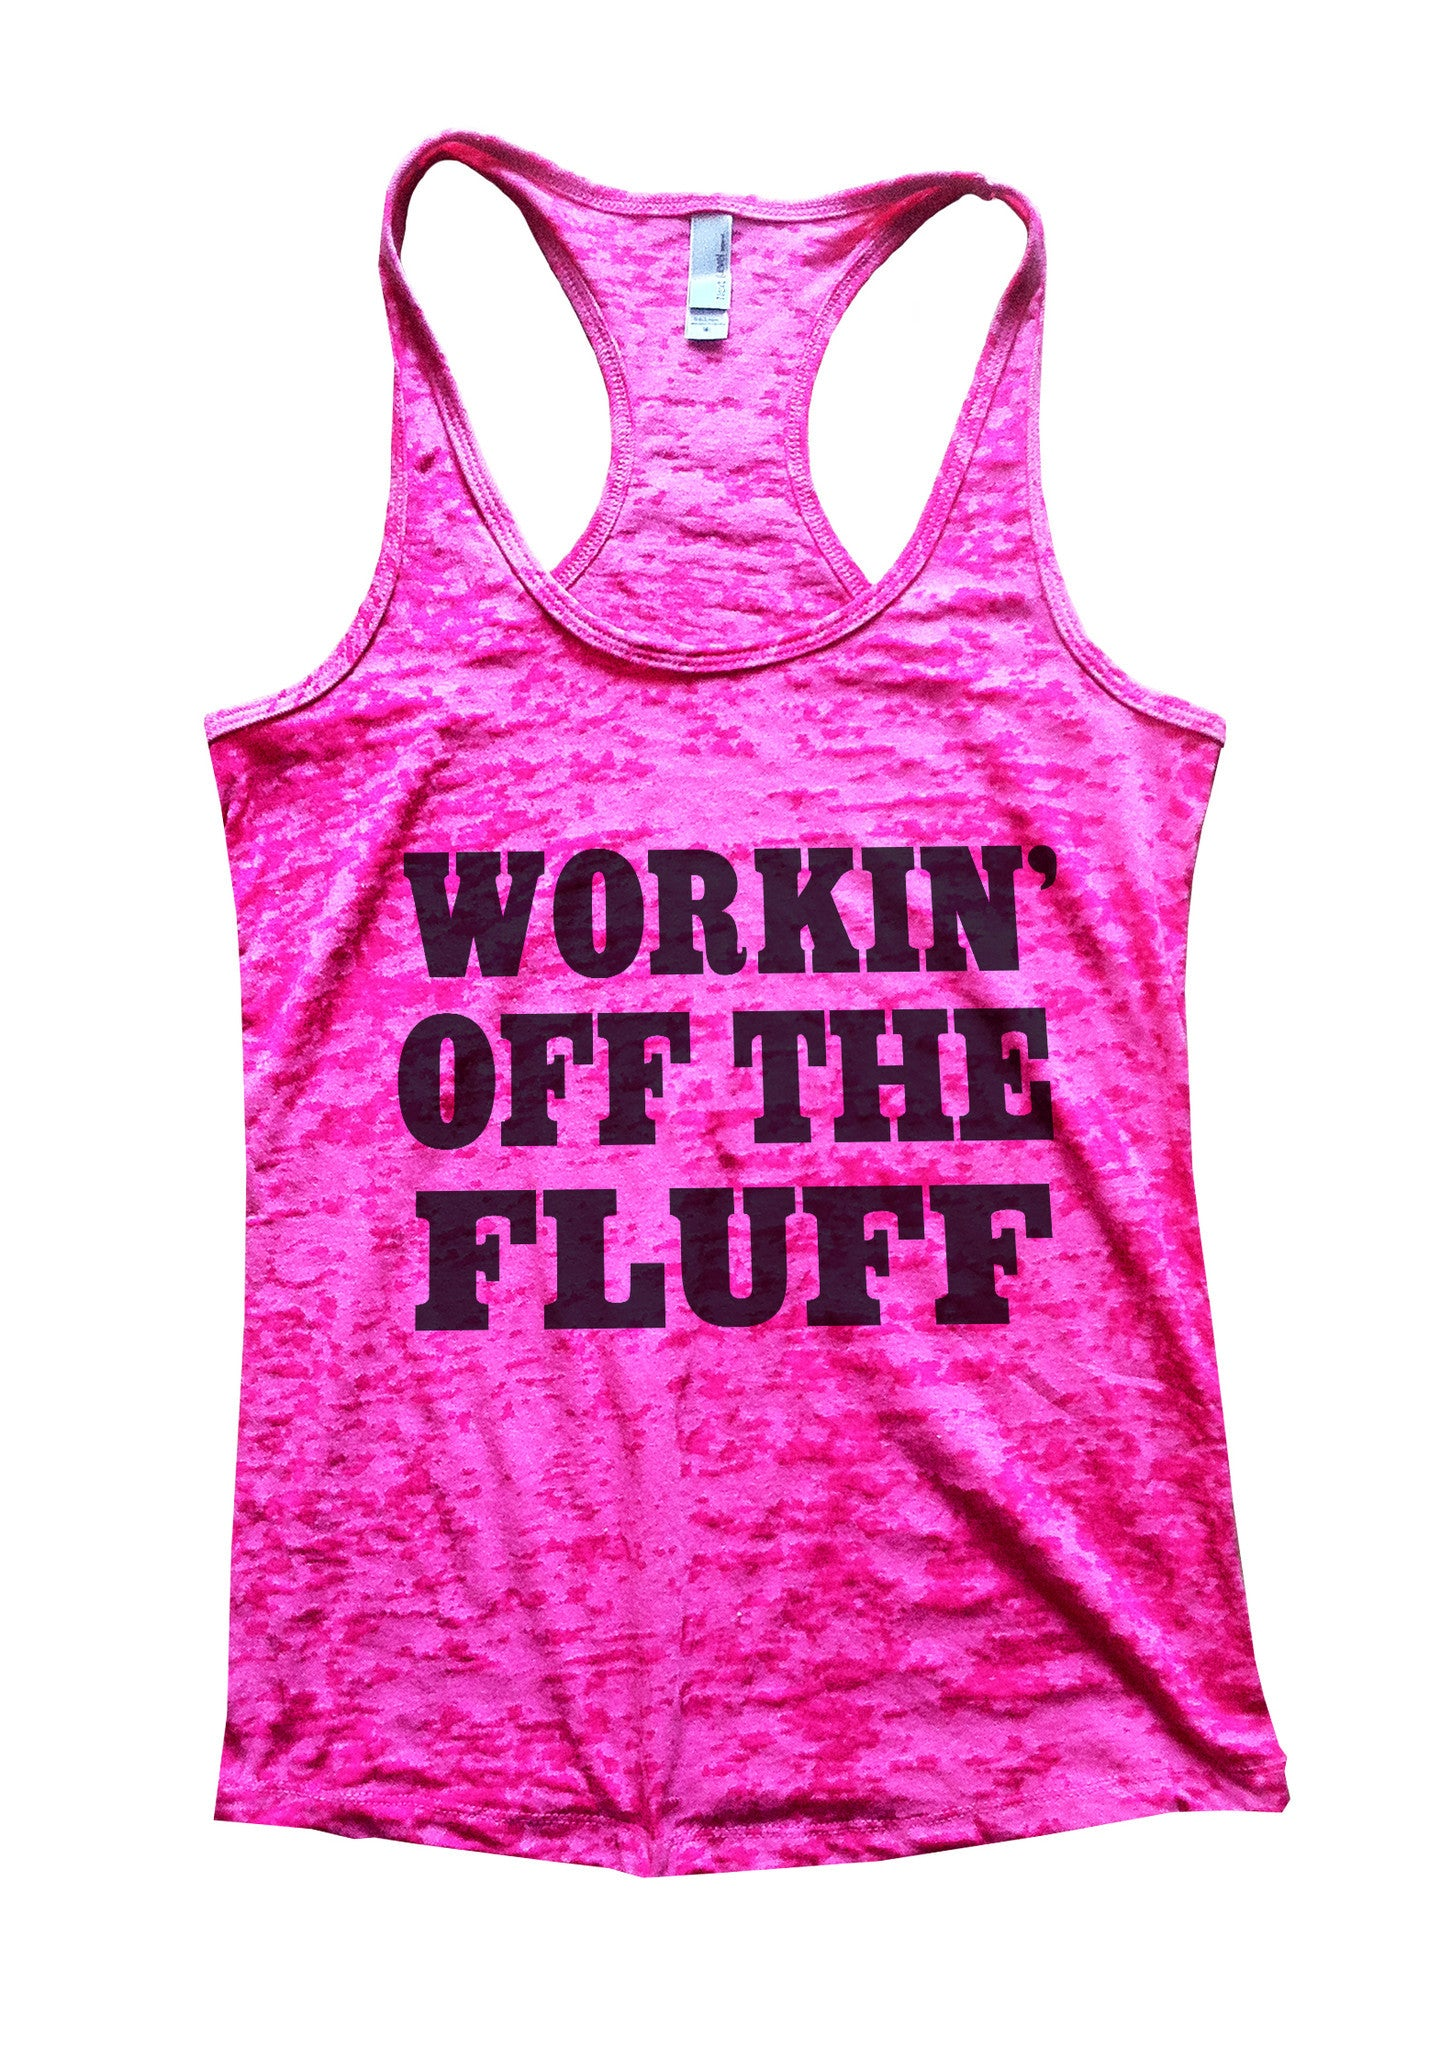 Working Off The Fluff Burnout Tank Top By BurnoutTankTops.com - 688 - Funny Shirts Tank Tops Burnouts and Triblends  - 3